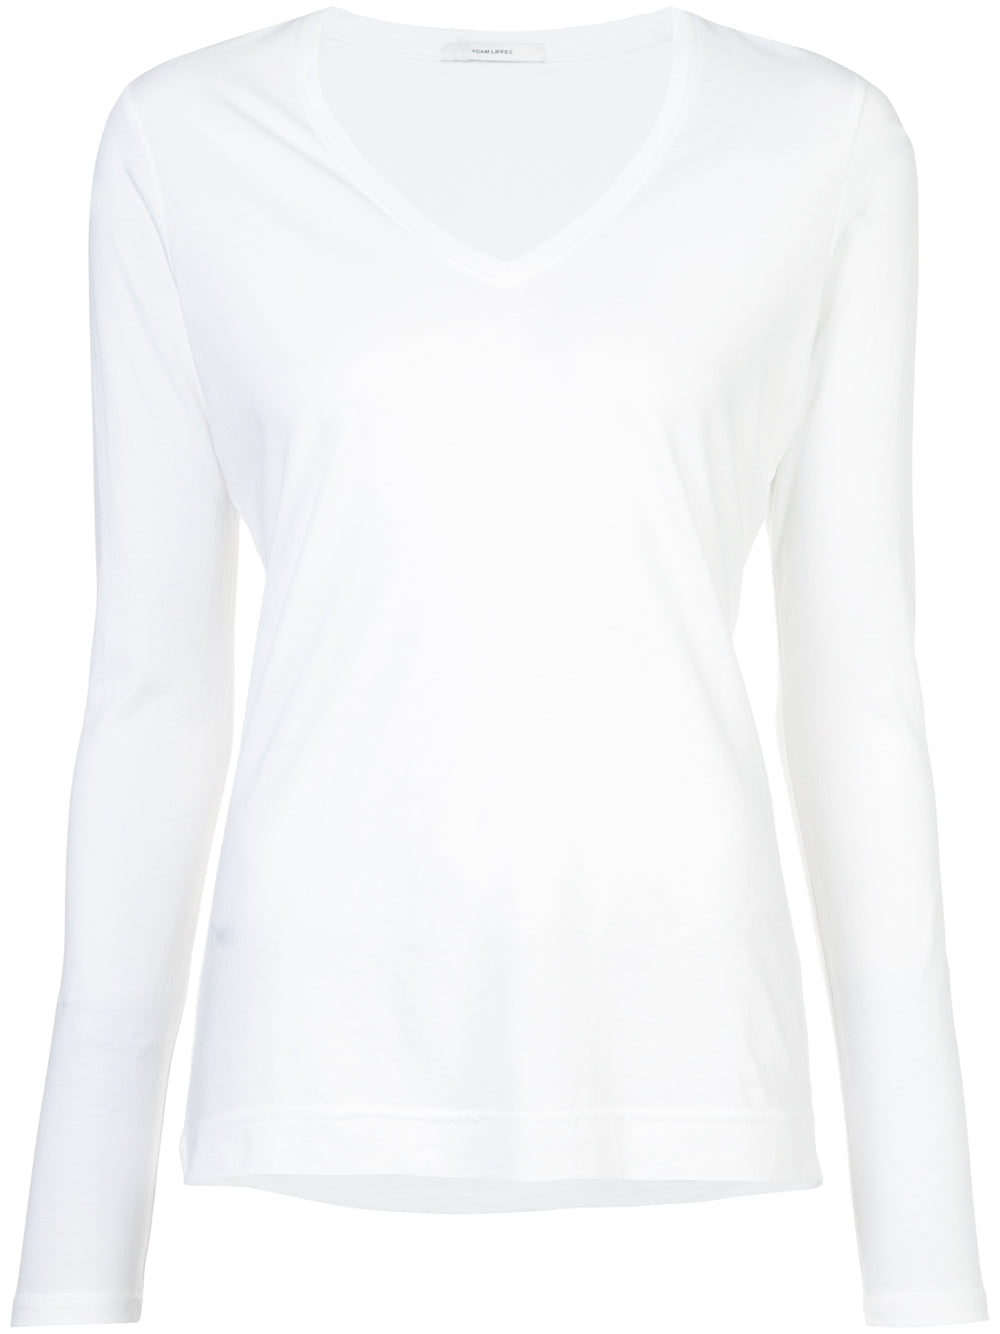 6ed301dfea8a Pima Cotton Long Sleeve V-Neck T-shirt – Adam Lippes